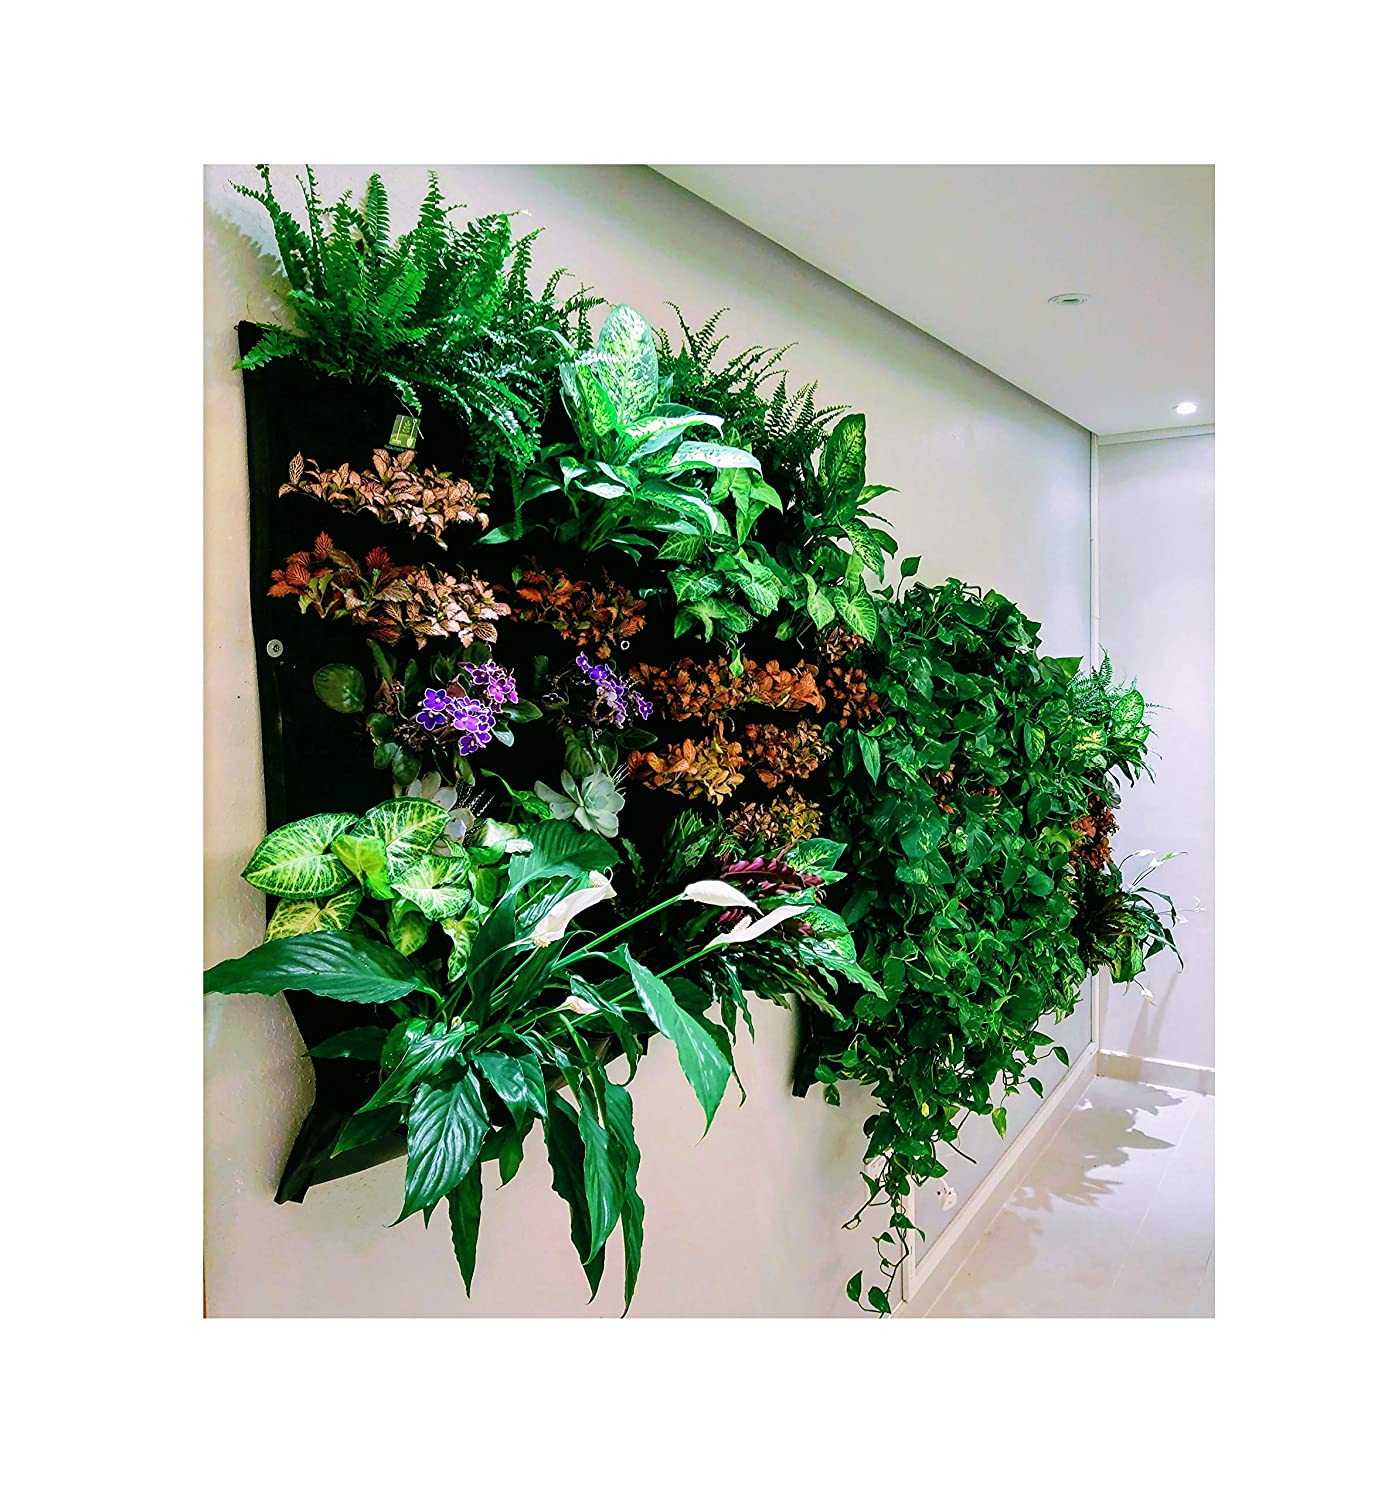 Vertical Living Wall Amazon.com: 12 Pocket Indoor Waterproof Vertical Living Wall Planter:  Garden u0026 Outdoor